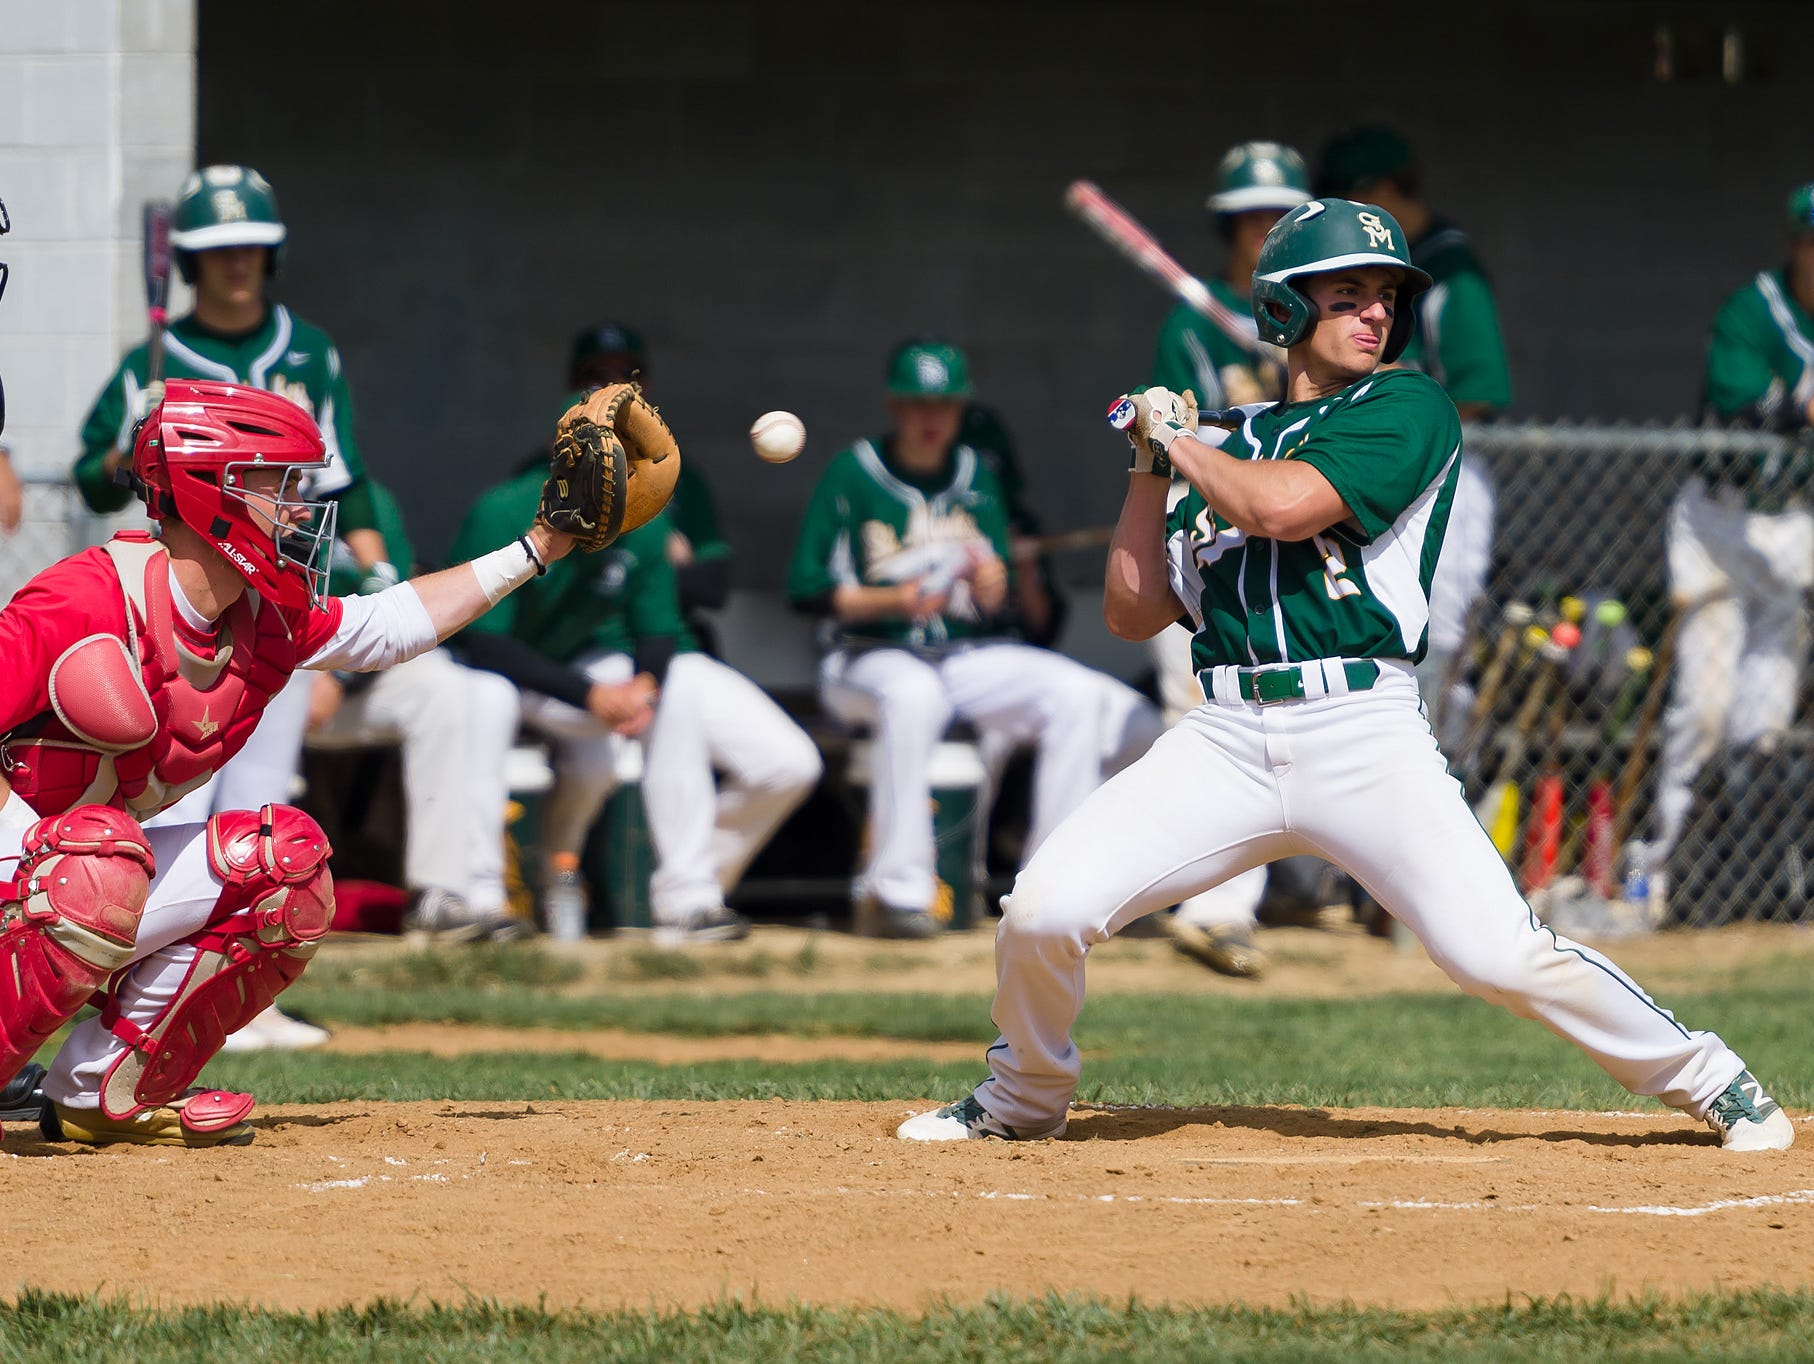 Austin Colmery (2) of St. Mark's dodges an inside pitch against Smyrna last season. Colmery is one of several returnees for the defending state champs, who begin this season ranked No. 1 by The News Journal.